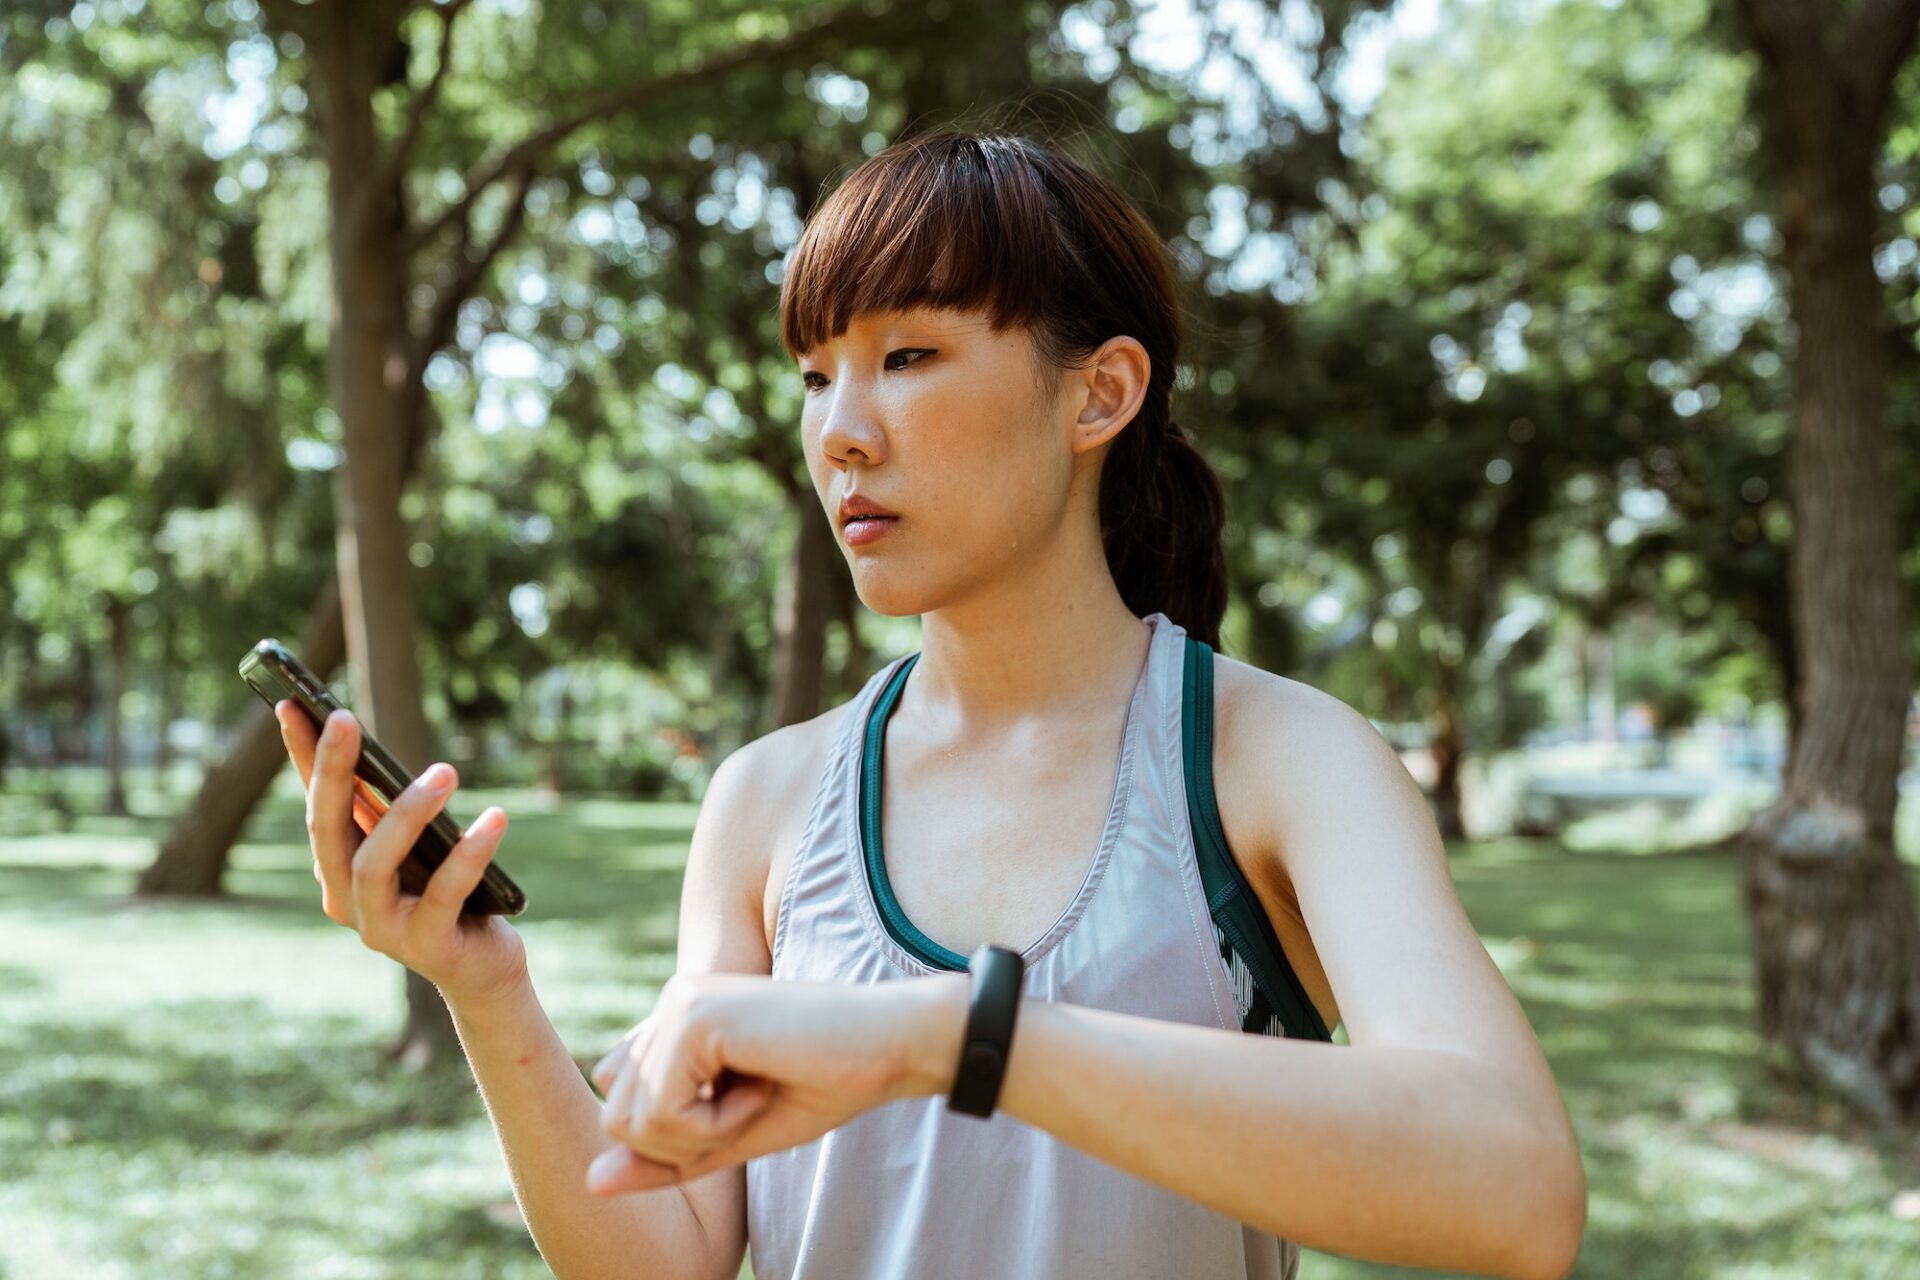 asian girl with a phone and a fitbit getting ready to exercise